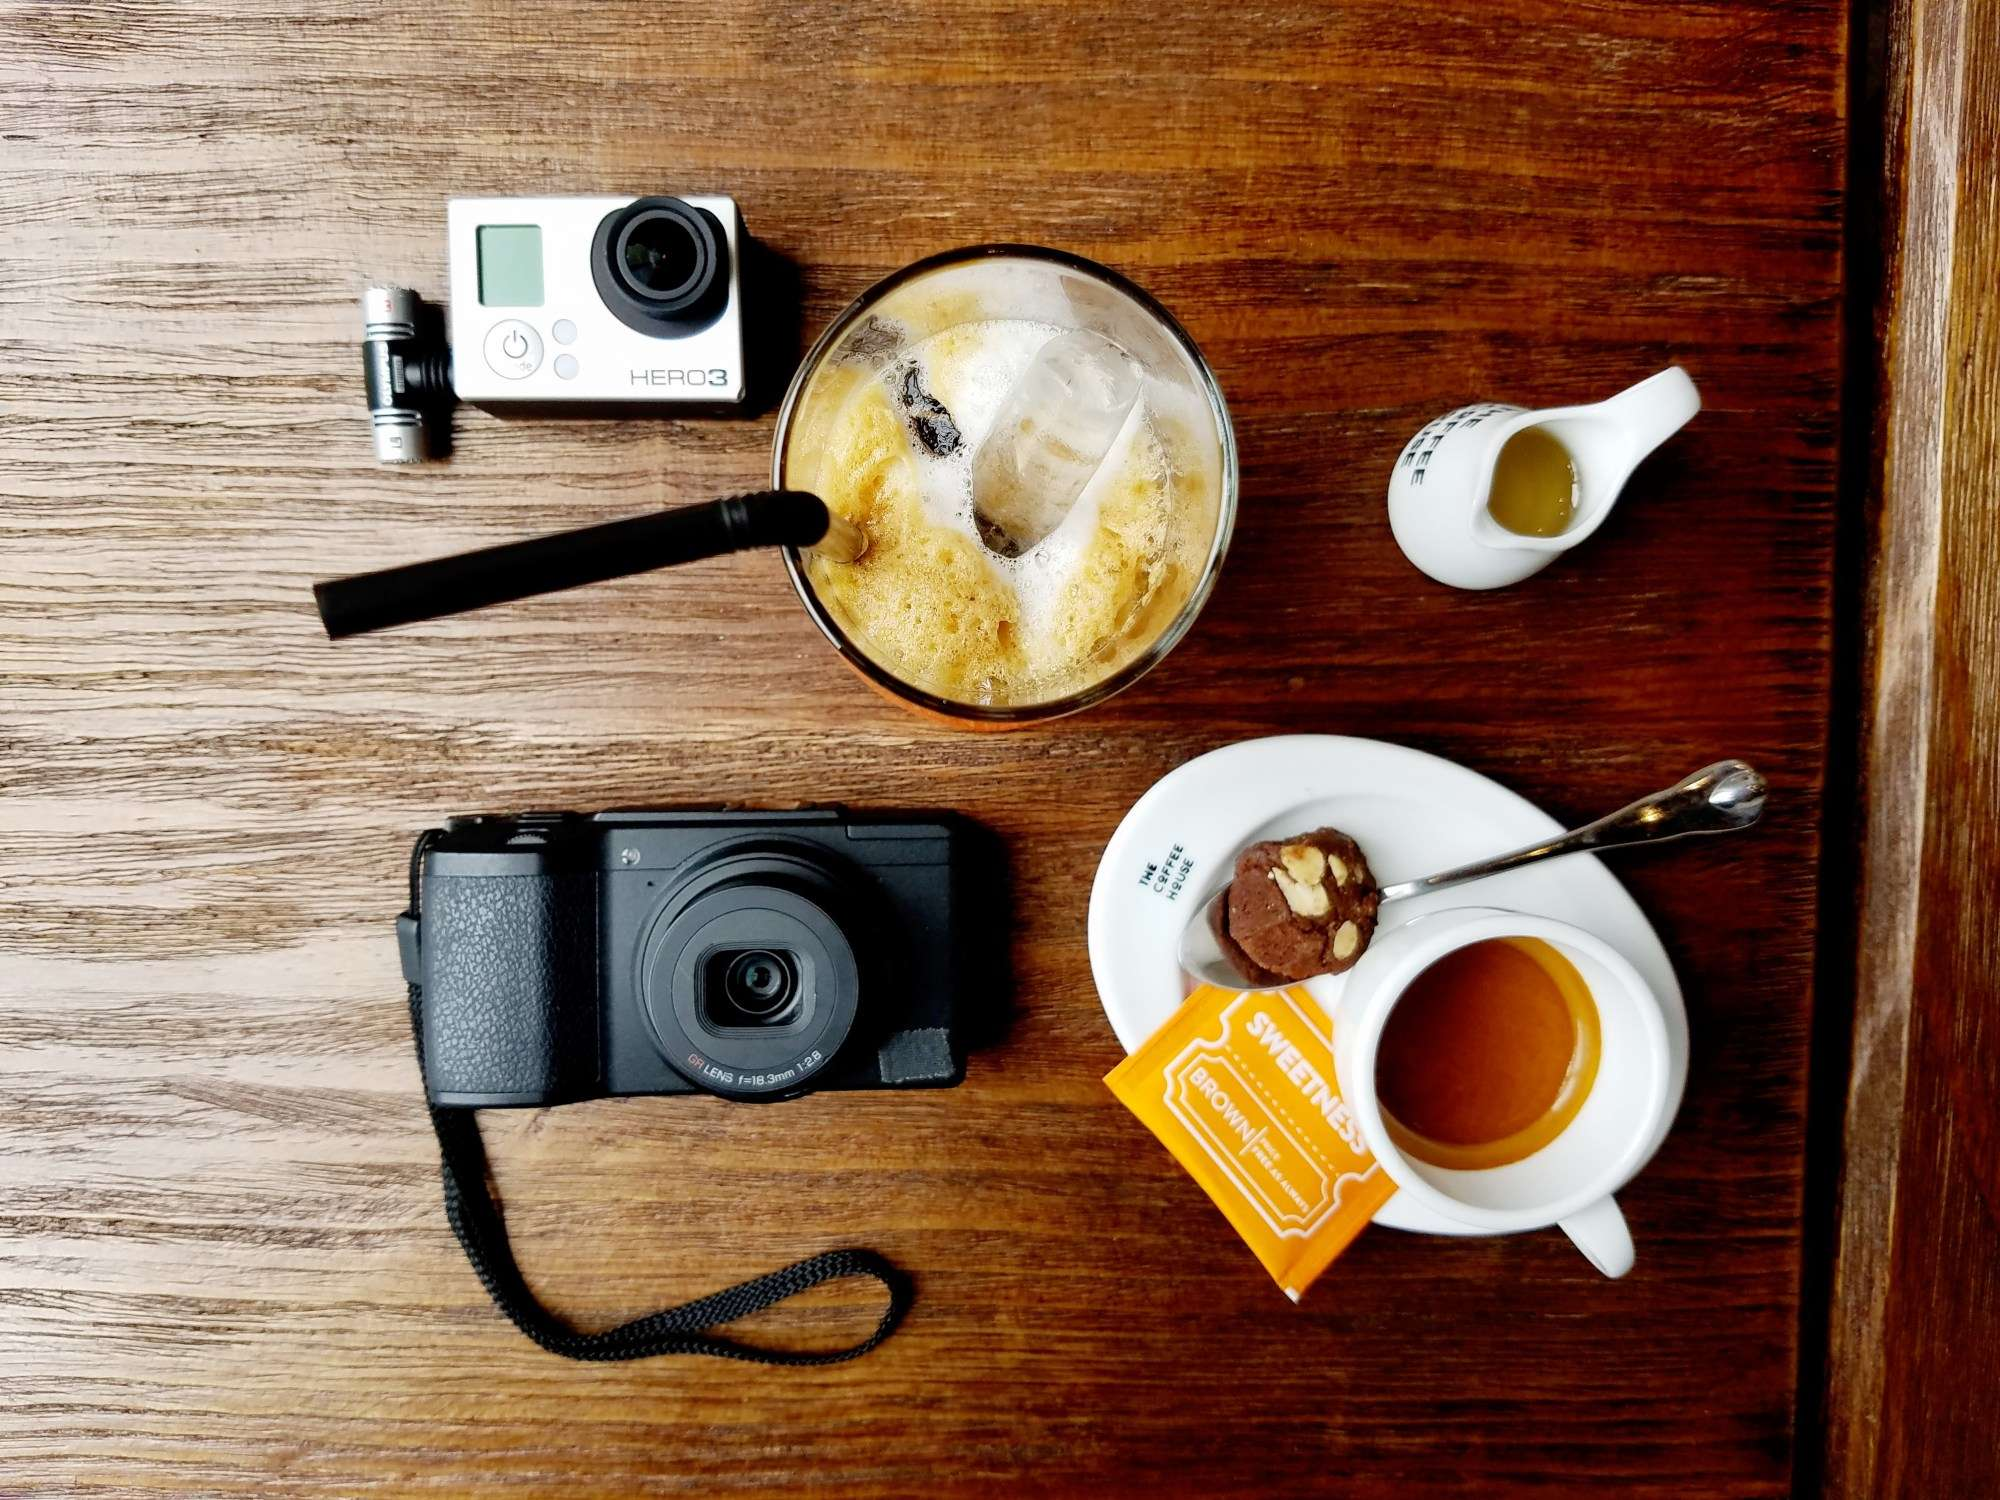 Tools of Hanoi: Ricoh GR II, GoPro Hero 3, and (lots of) coffee in Hanoi, 2016